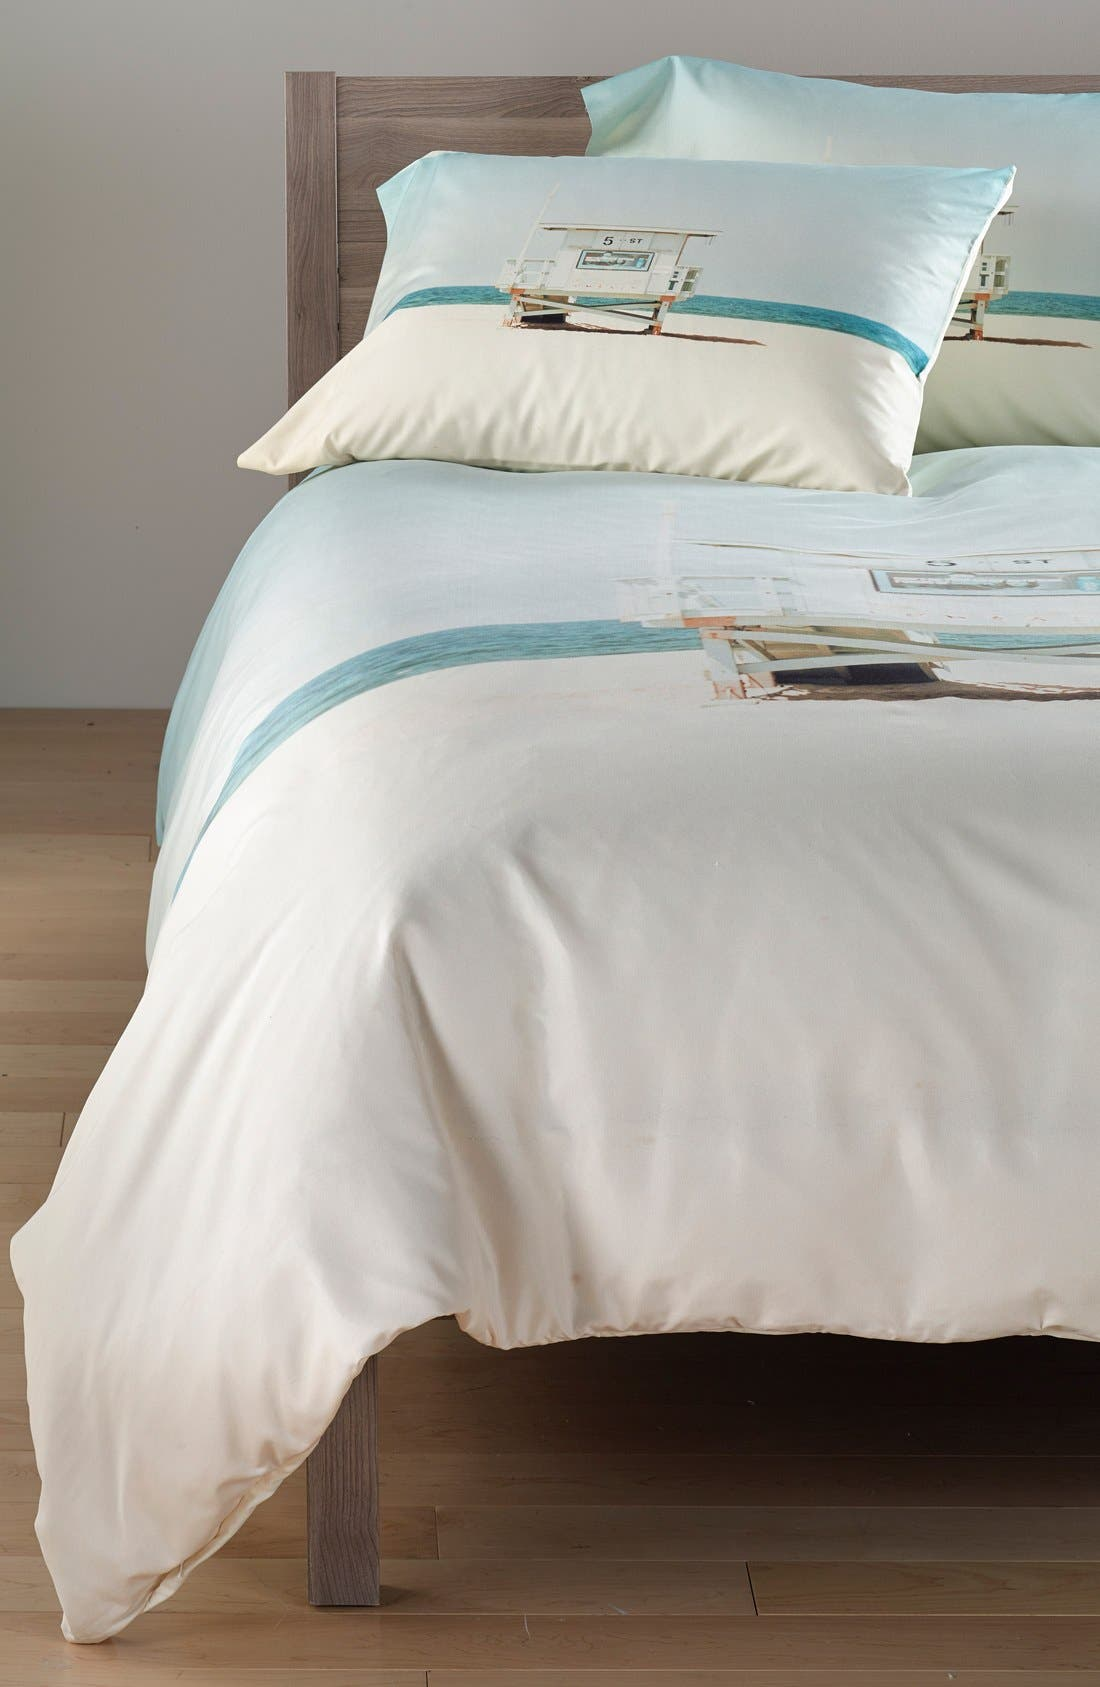 DENY Designs Bree Madden 5th St. Duvet Cover & Sham Set